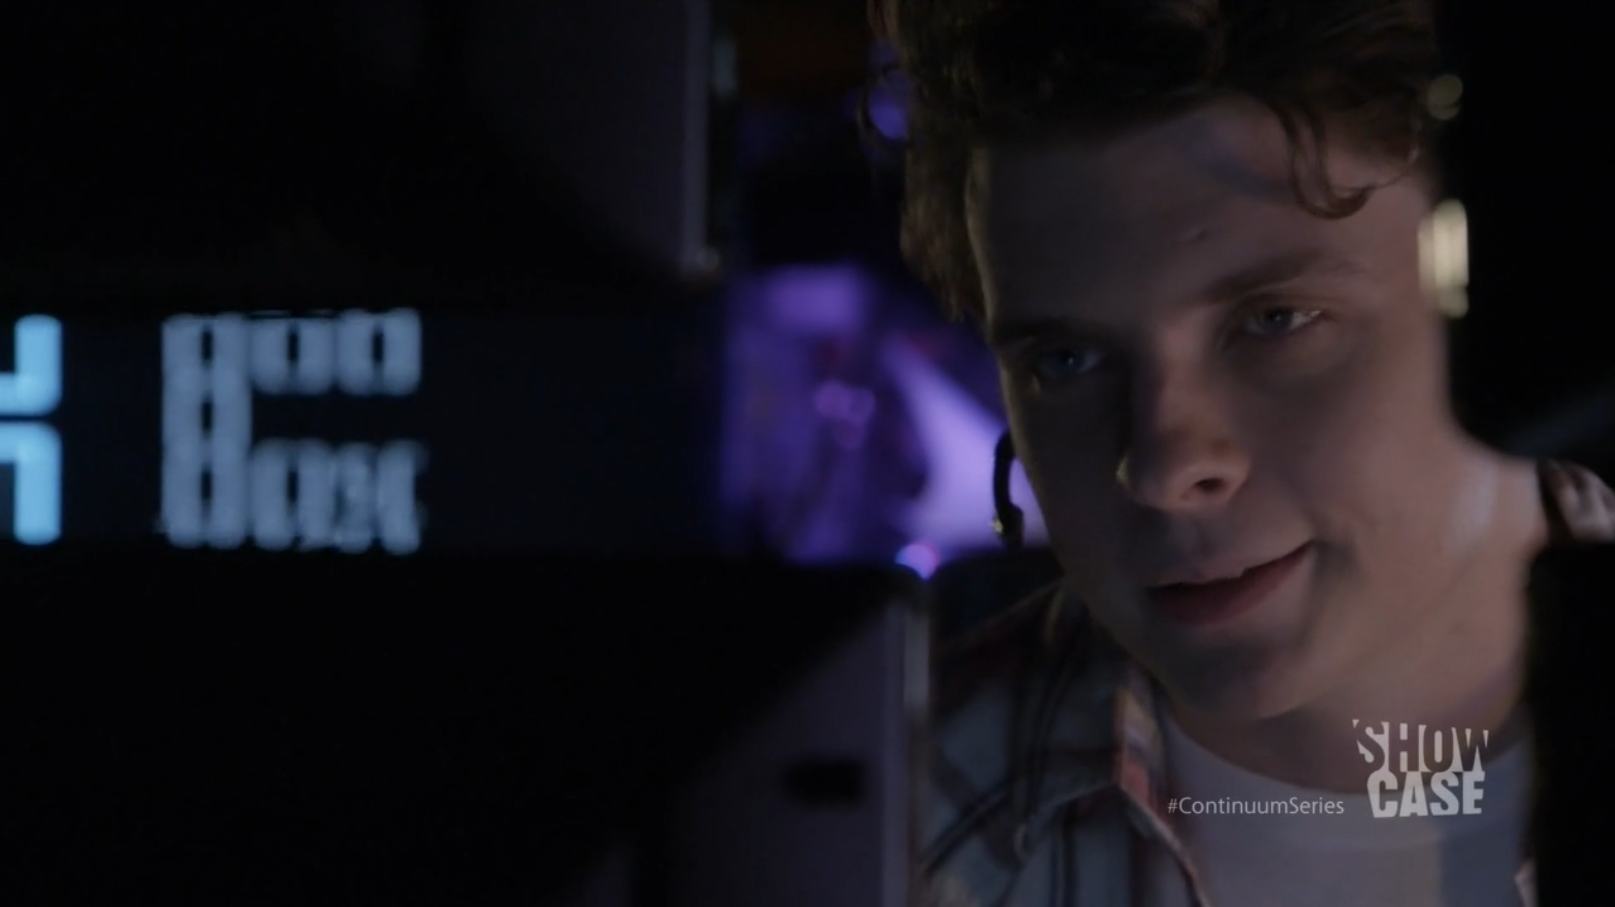 Continuum - Erik Knudsen as a Young Alec Sadler